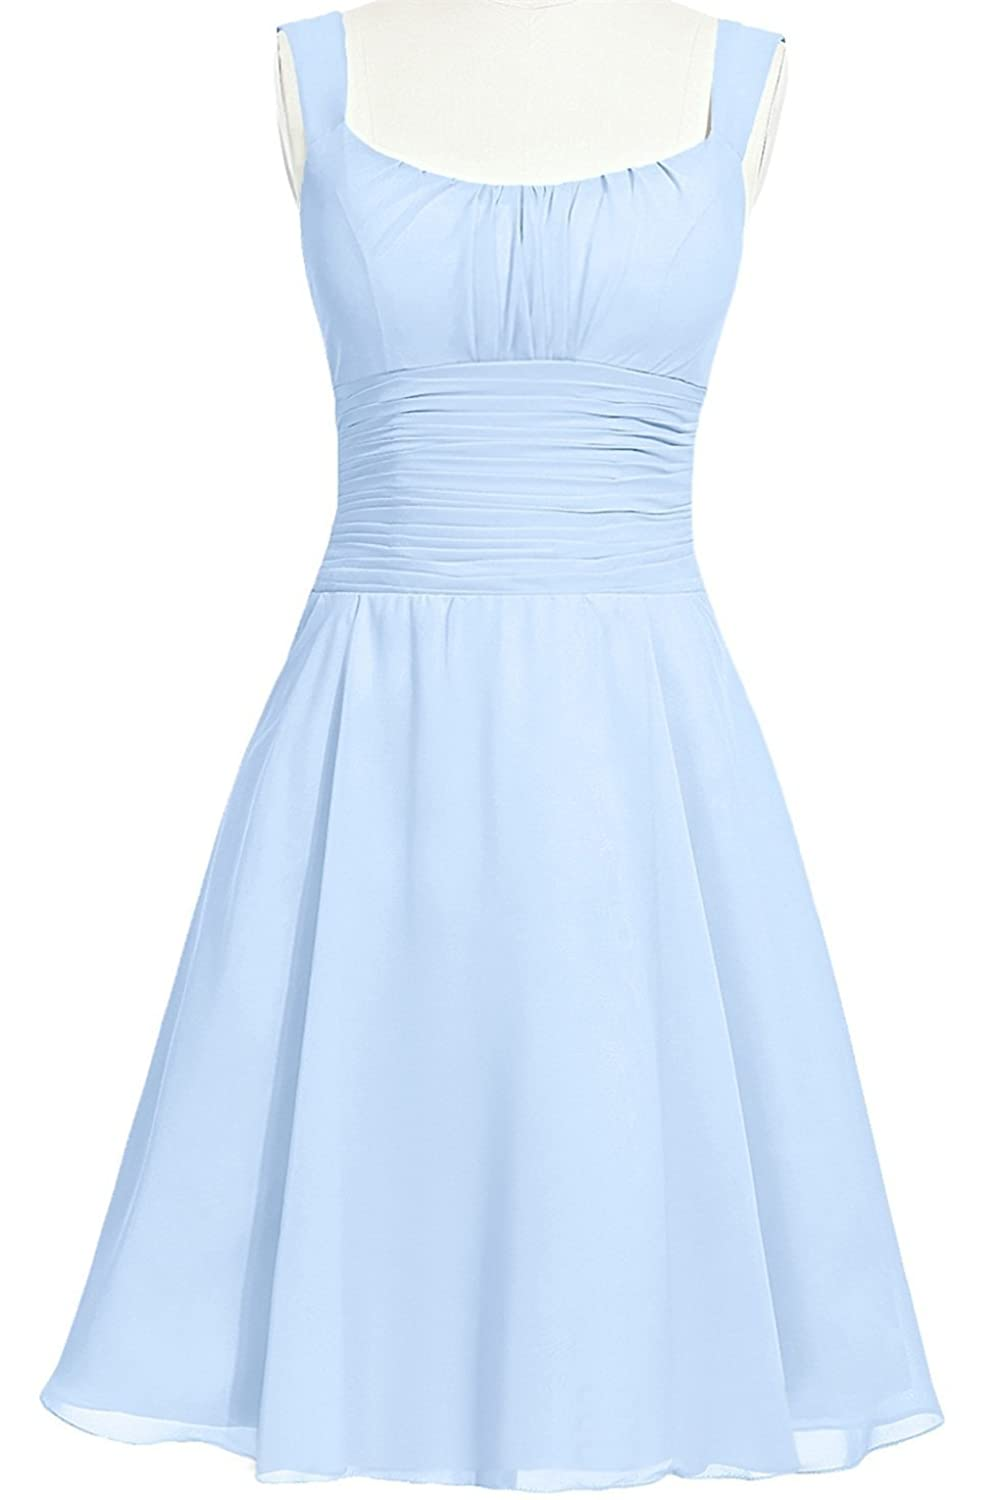 MittyDressesWomens Evening Homecoming Prom Party Cocktail Dress Size 10 US Sky Blue